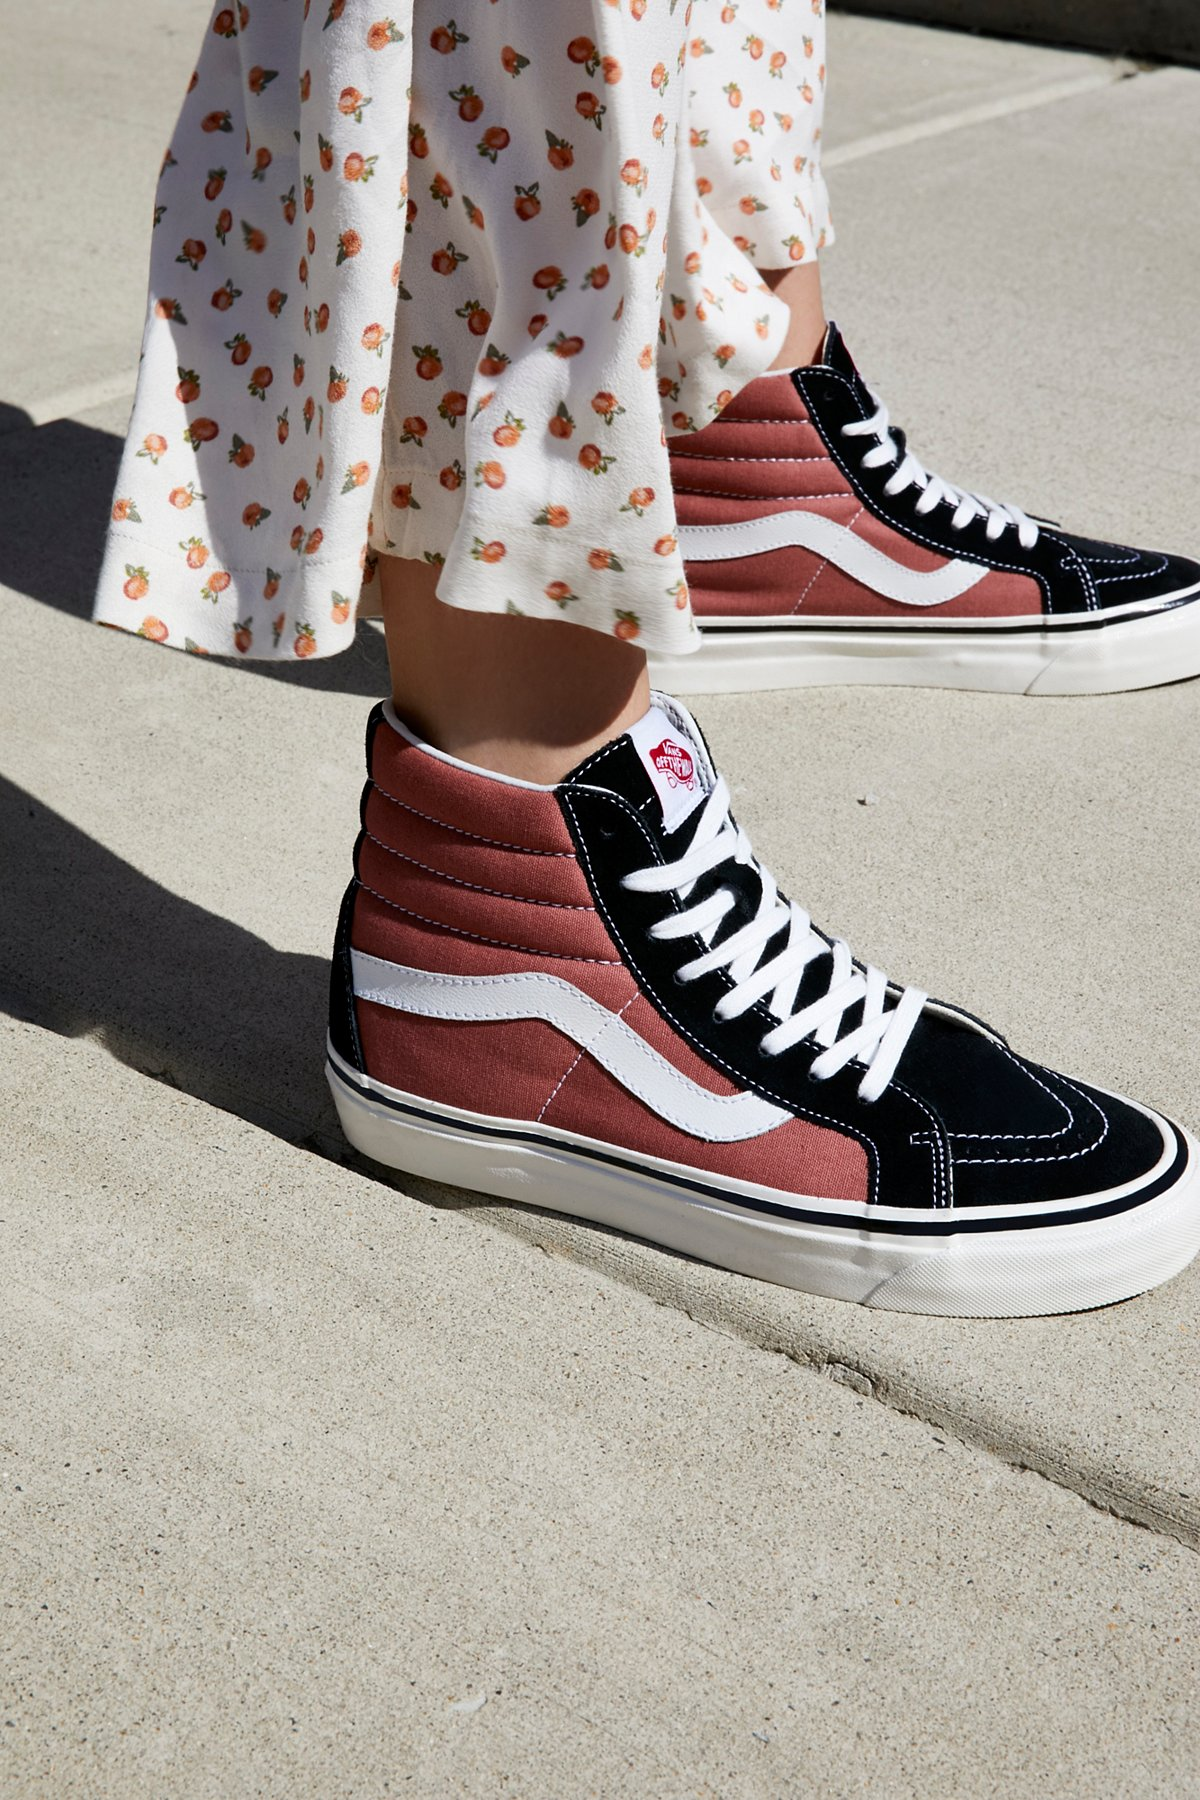 SK8-Hi 38 DX High Top Trainer